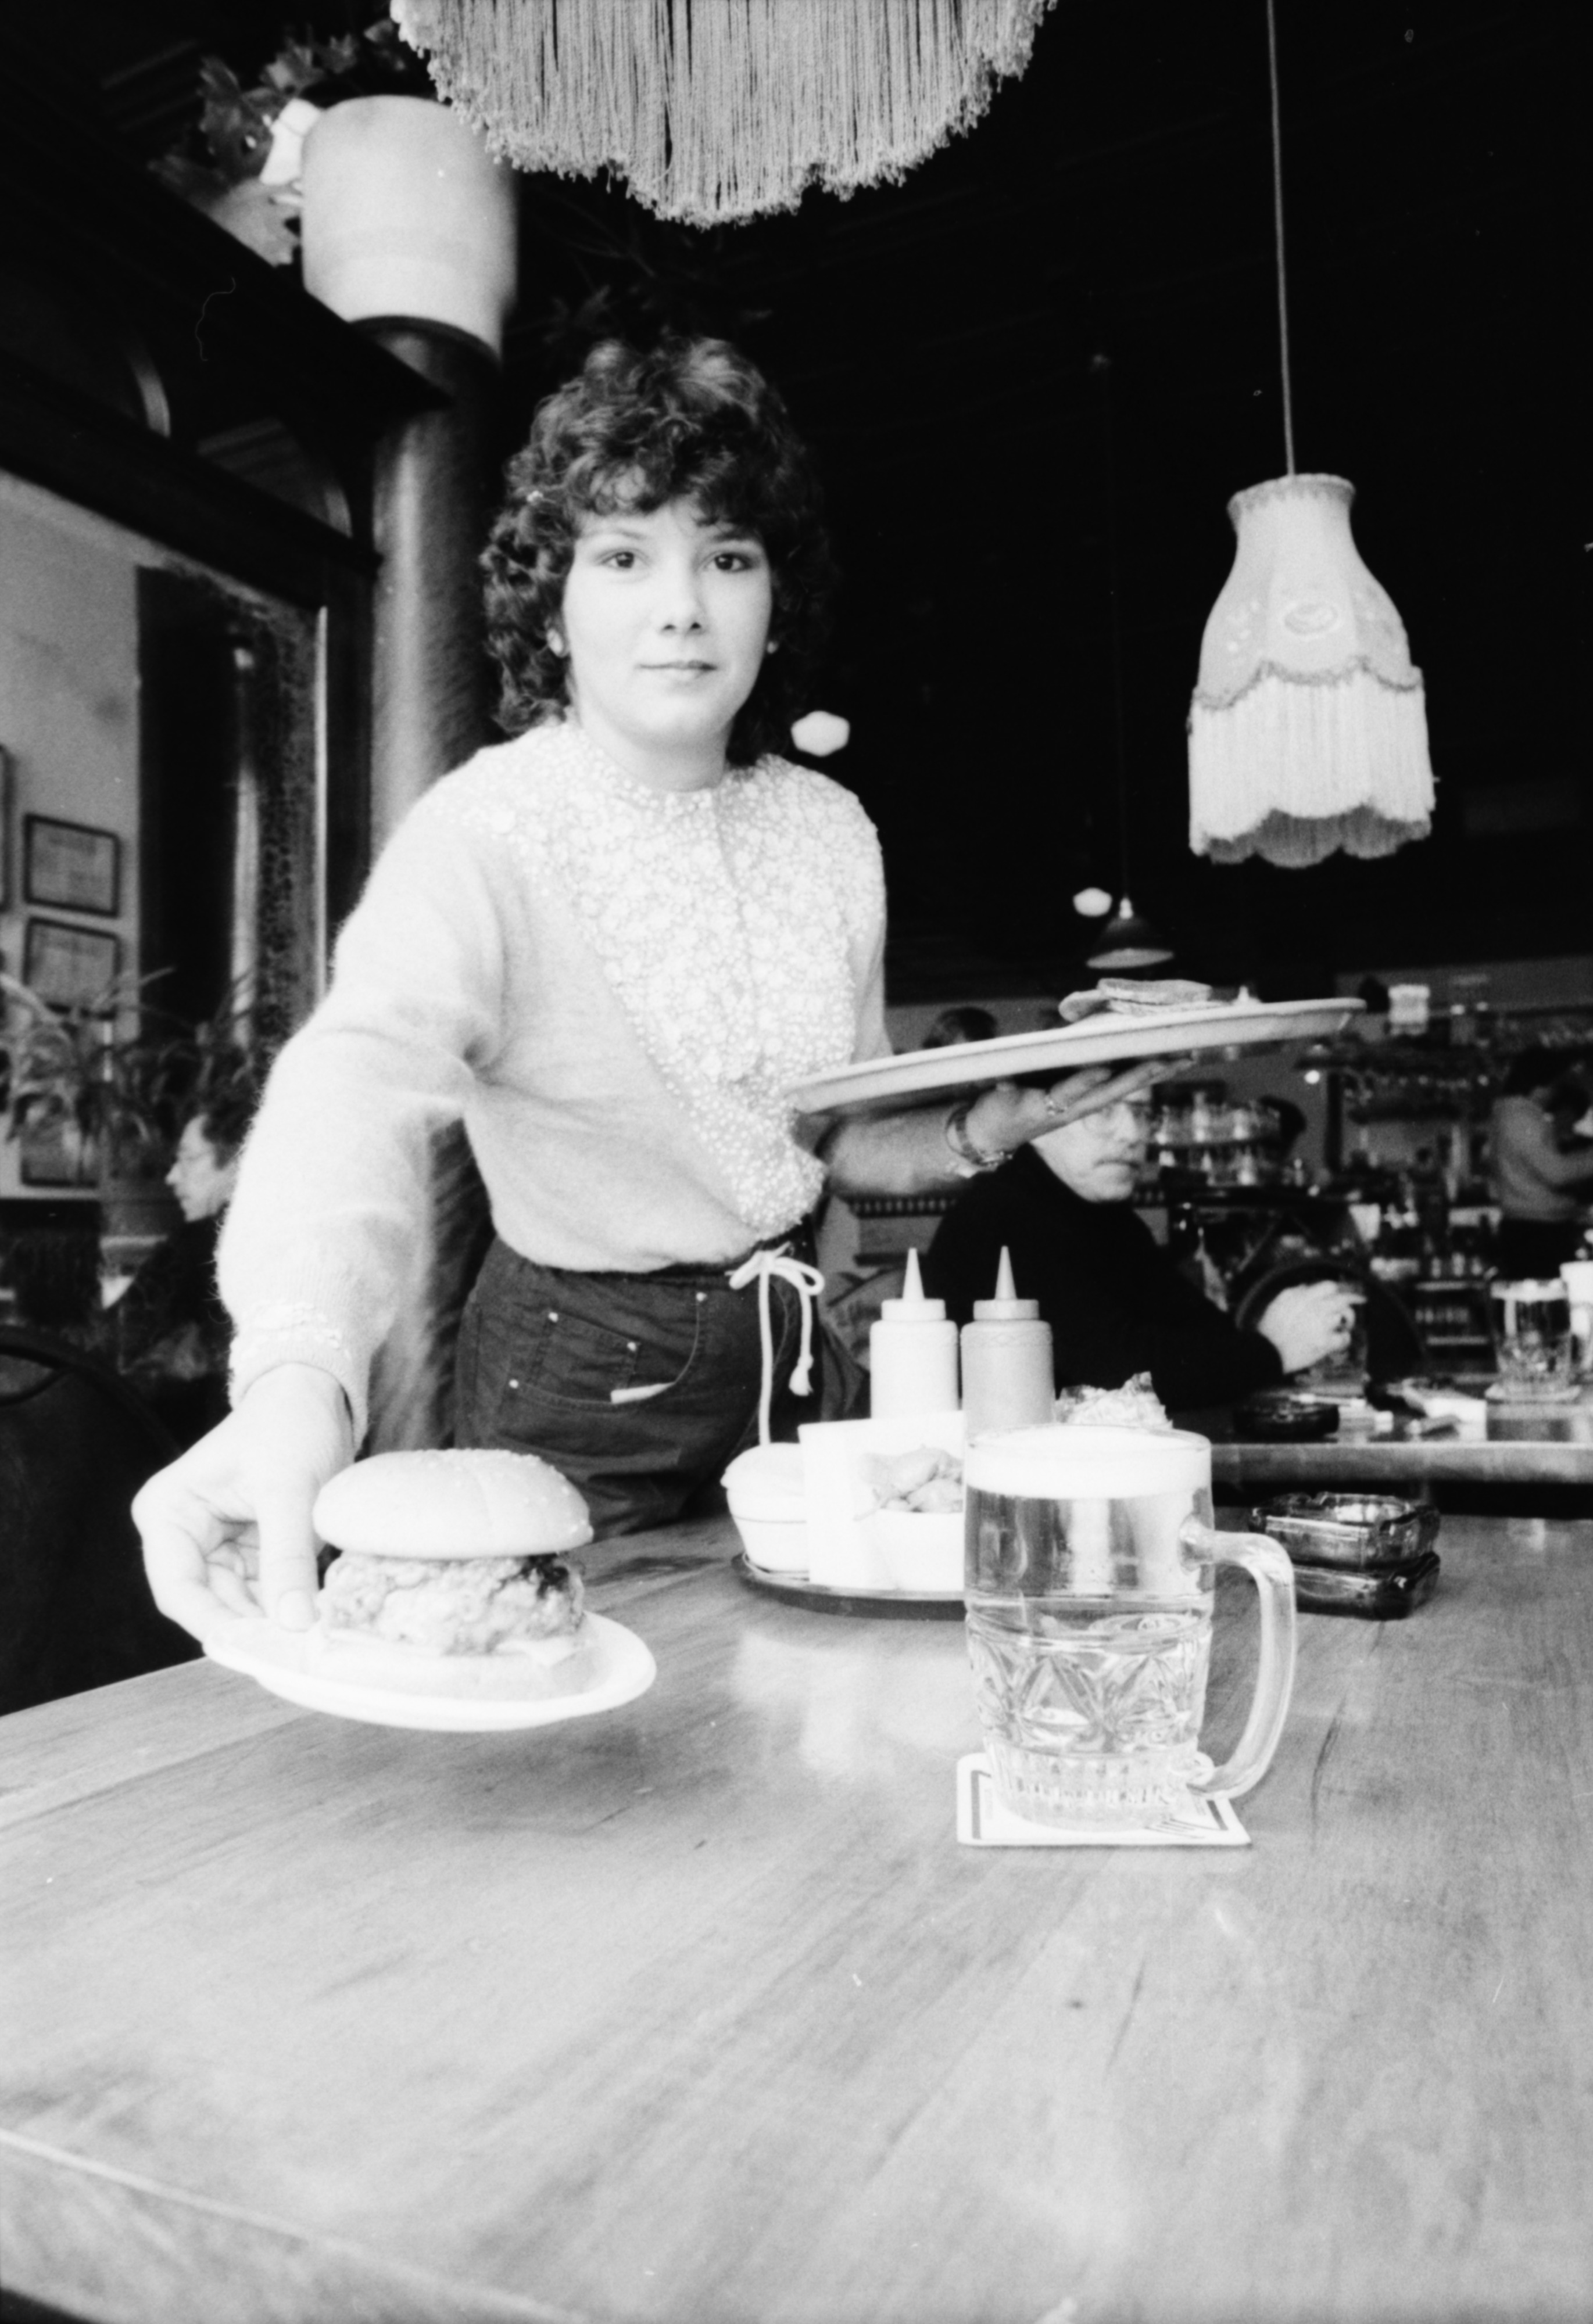 Waitress at Sidetrack Bar and Grill in Ypsilanti, February 1984 image